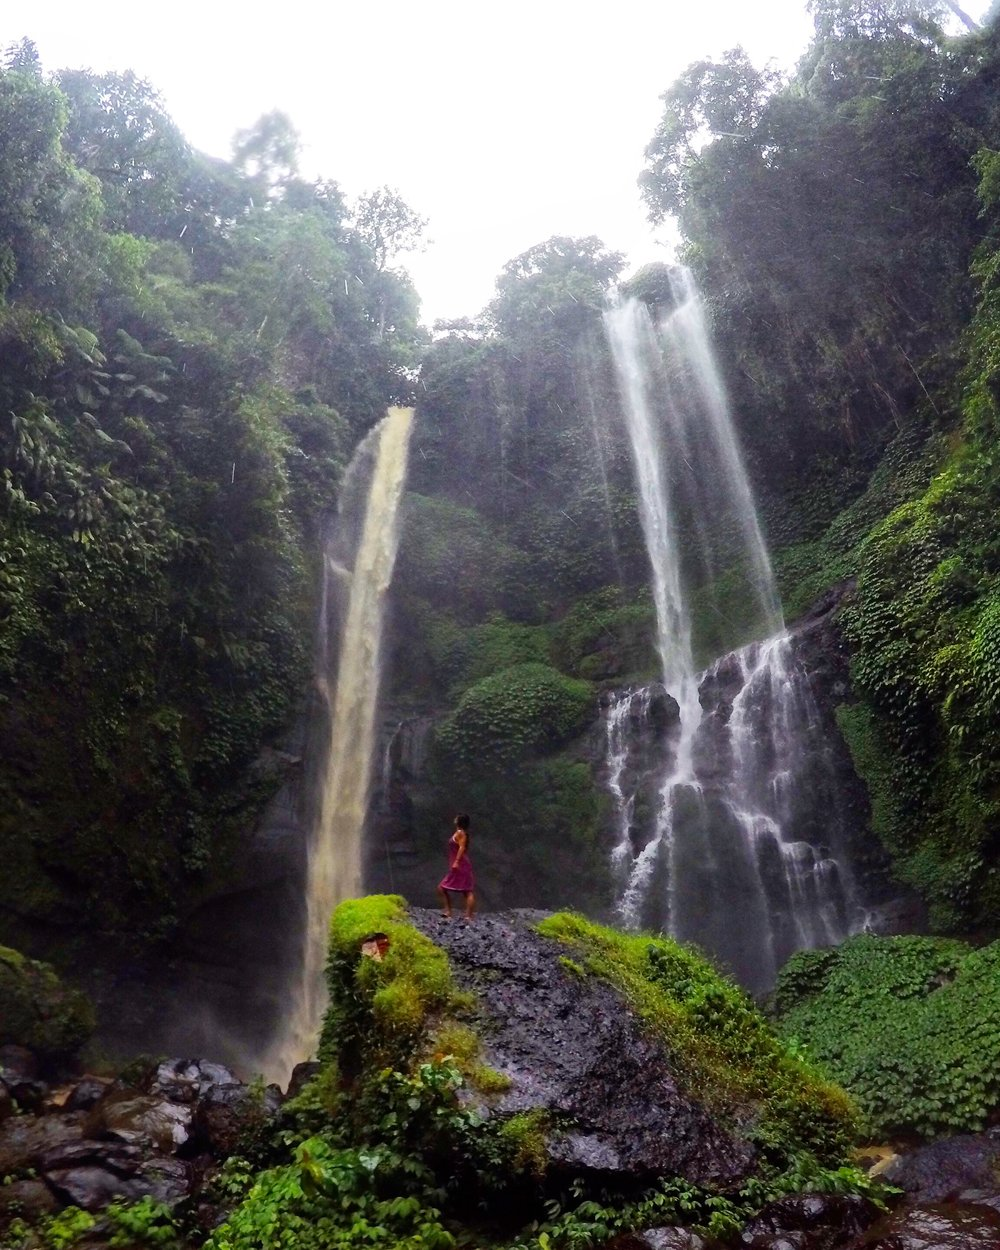 Sekumpul Waterfalls in North Bali.